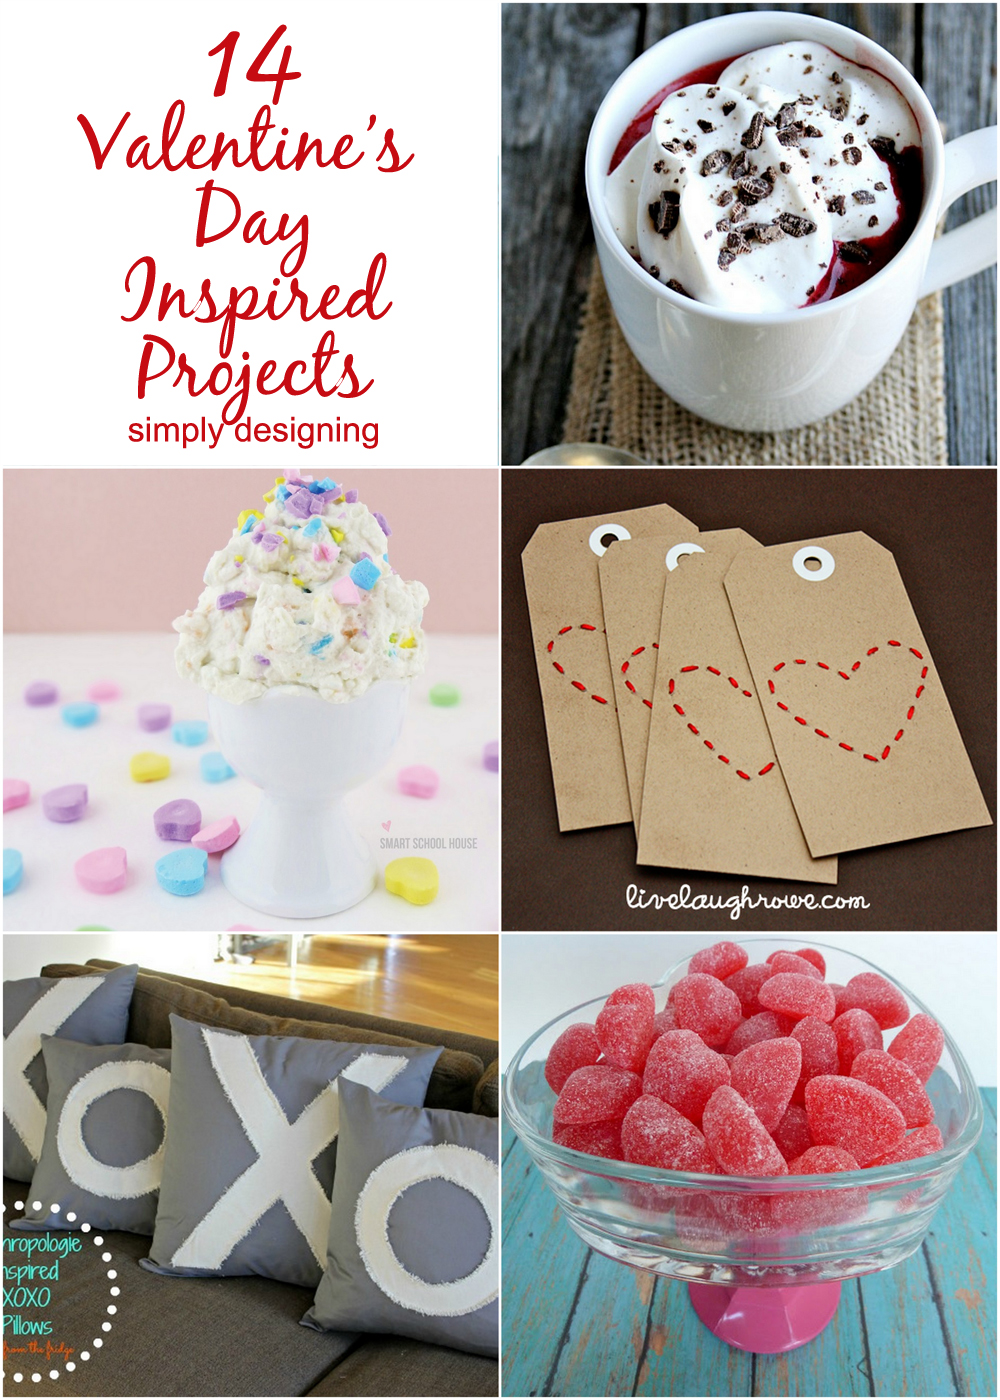 14 Valentine's Day Inspired Projects | #valentinesday #hearts #love #diy